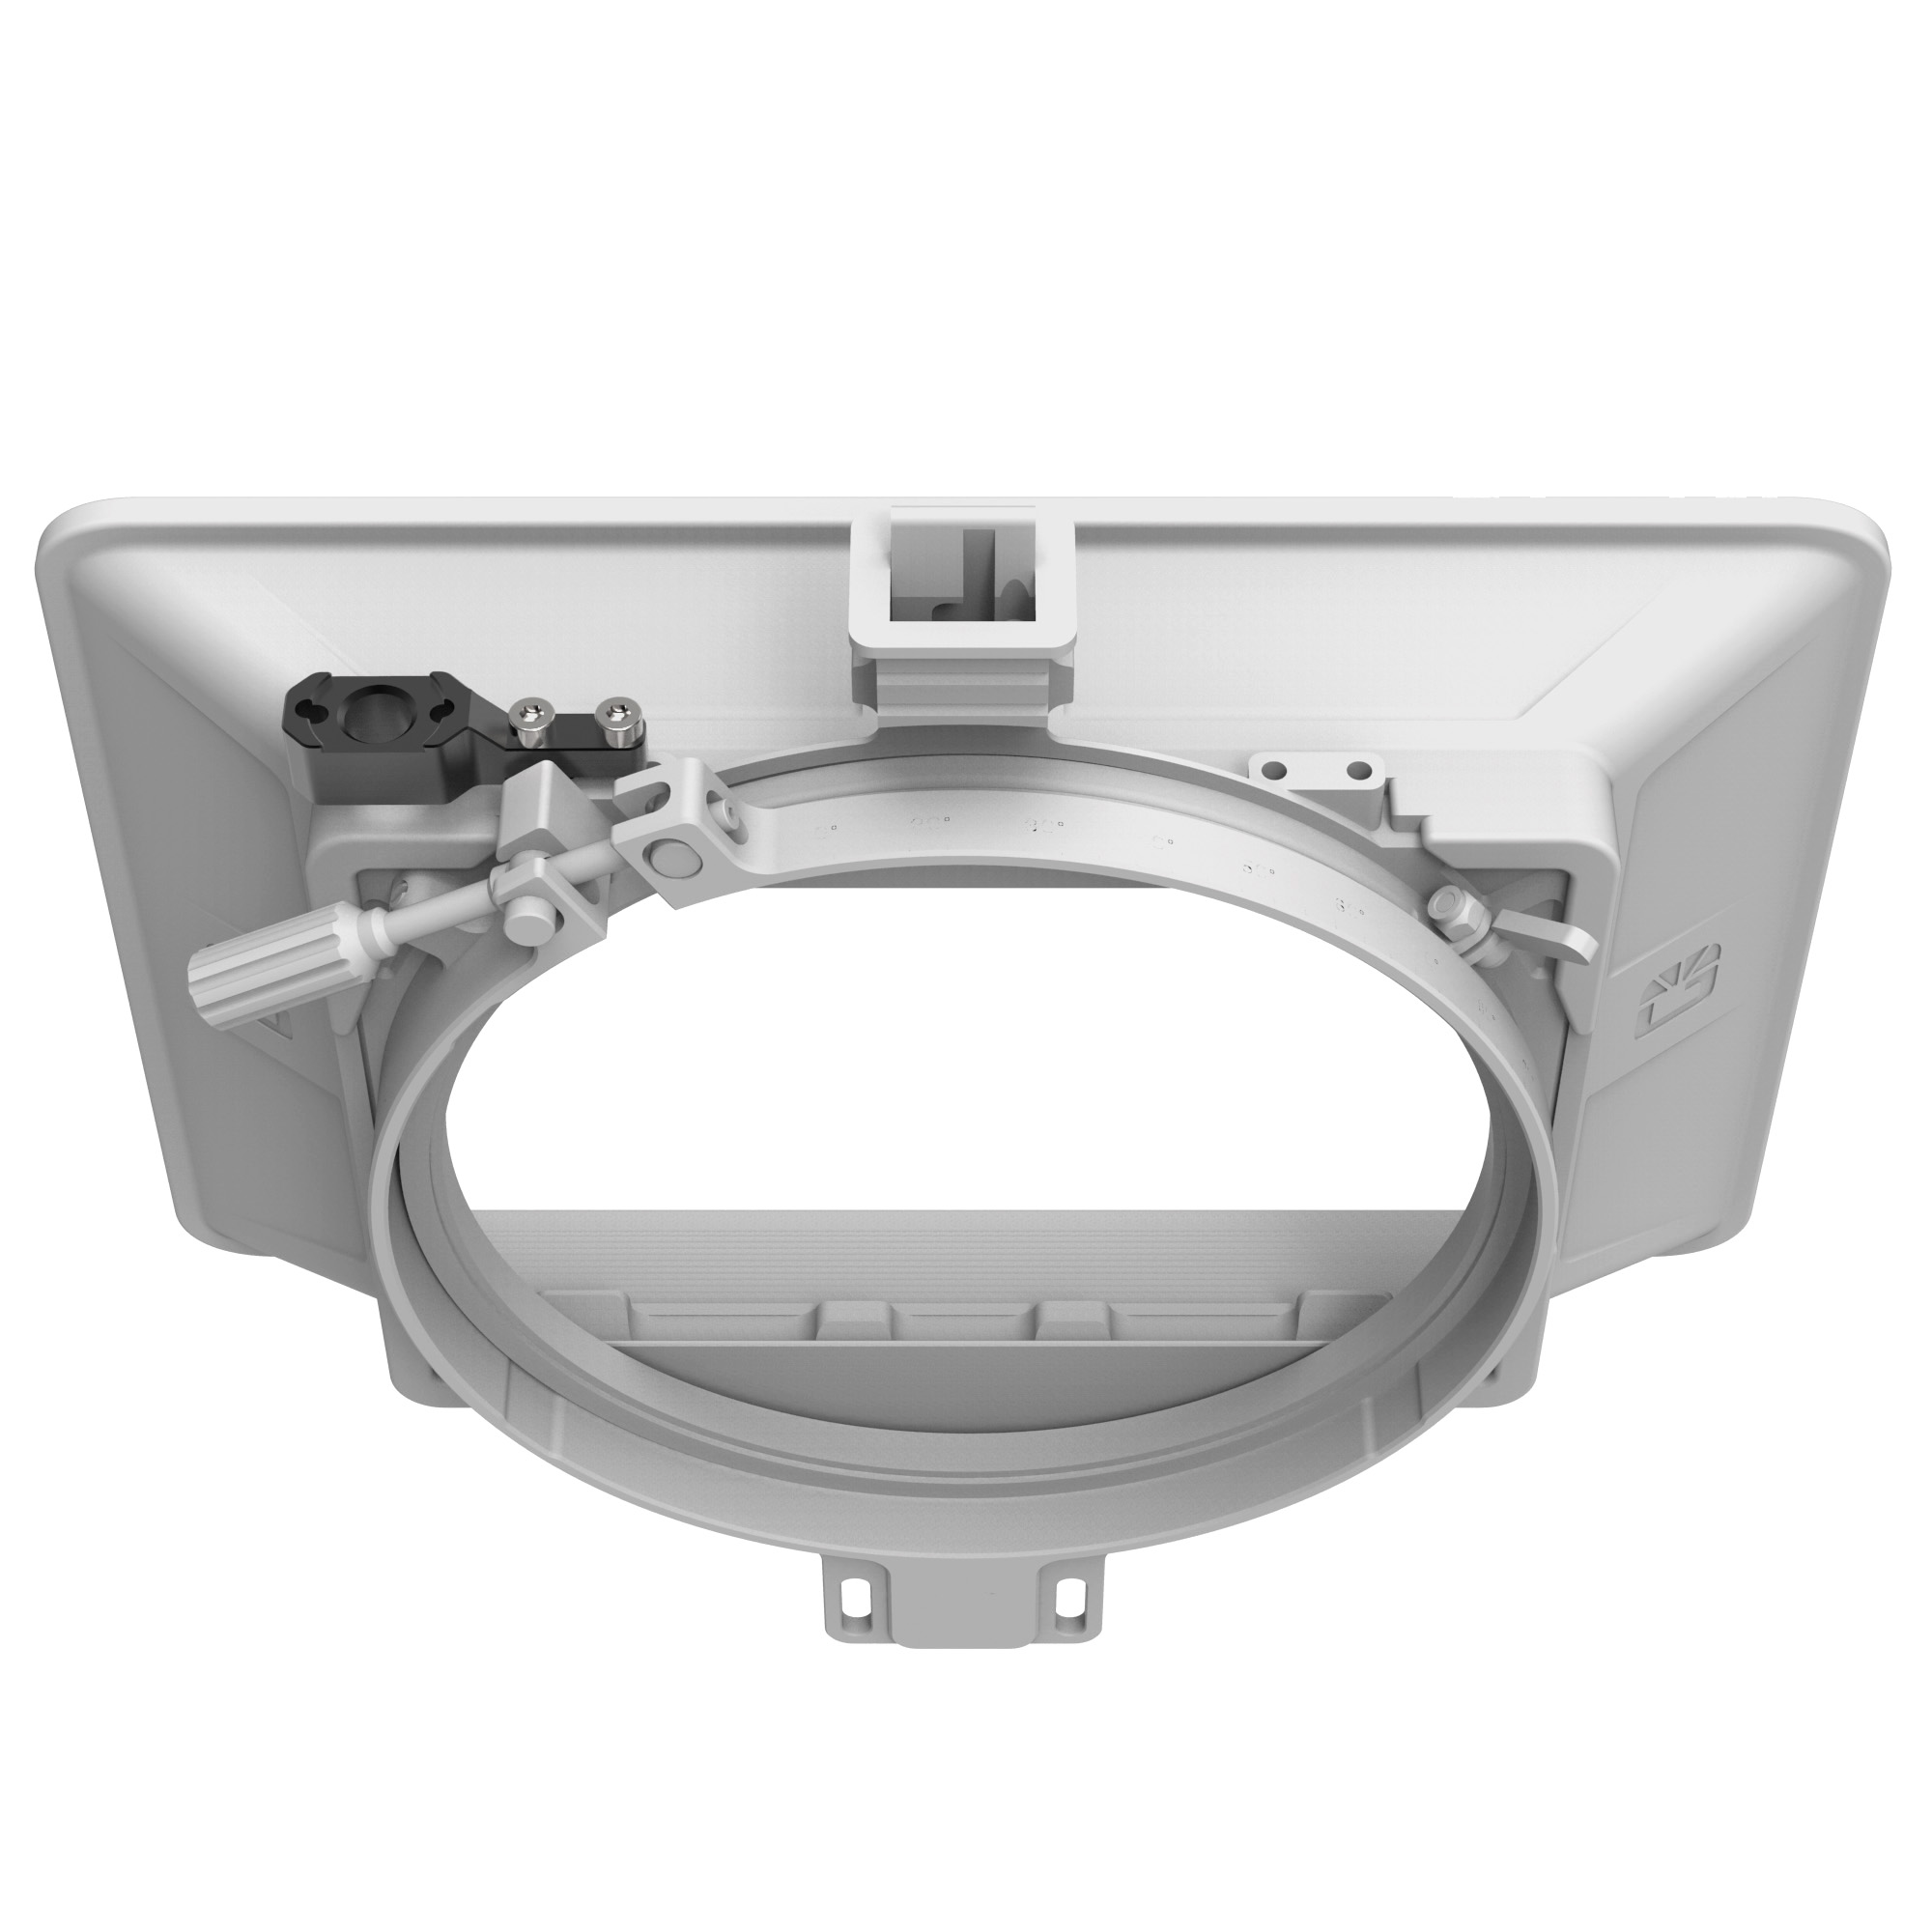 B1220.1004 Accessory Mount for Clash 138 4